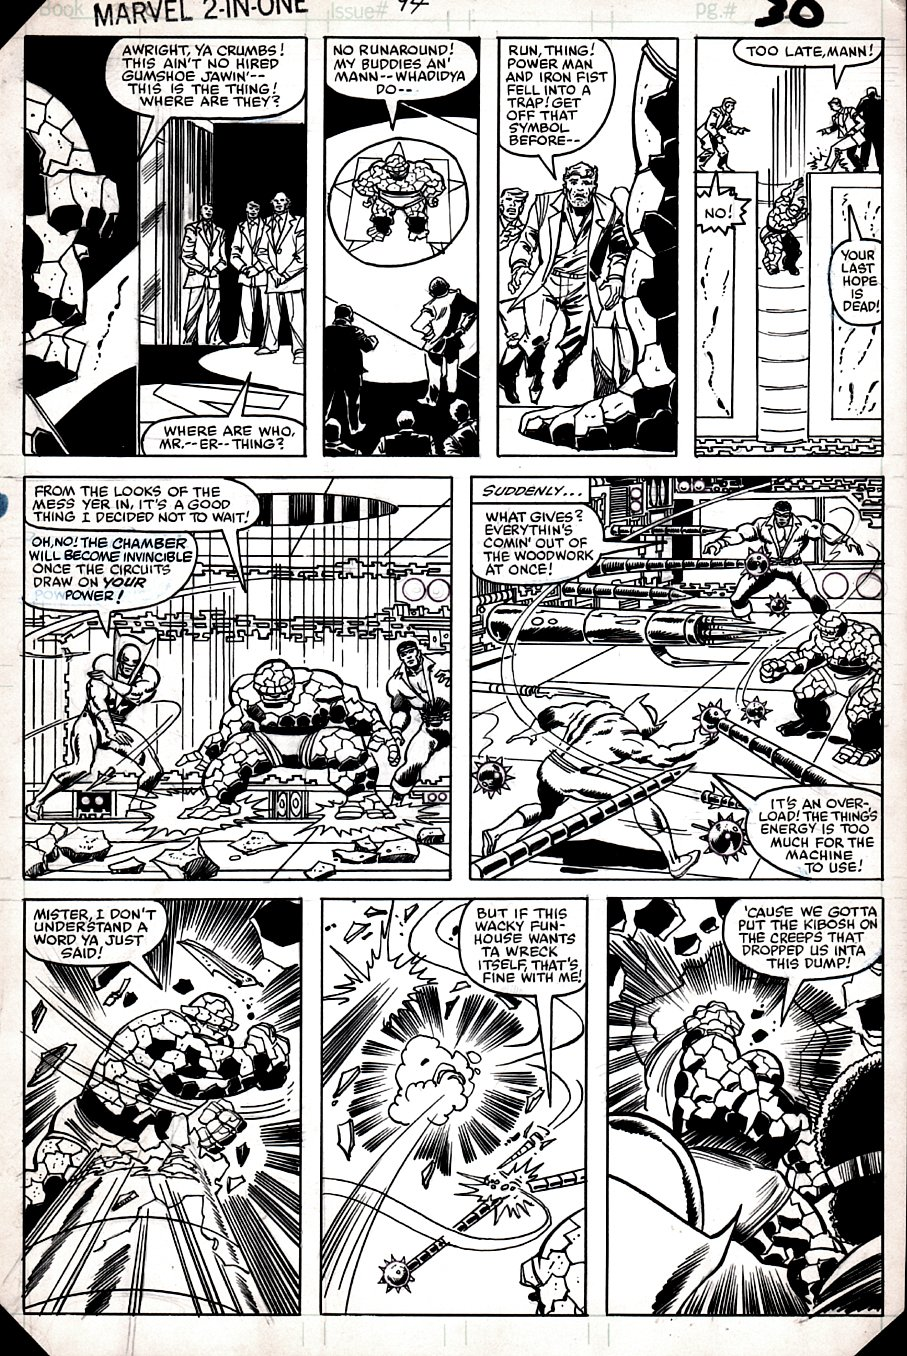 Marvel Two-in-One #94 p 30 (POWERMAN, IRONFIST, THE THING, BEST BATTLE PAGE IN THE BOOK!) 1982